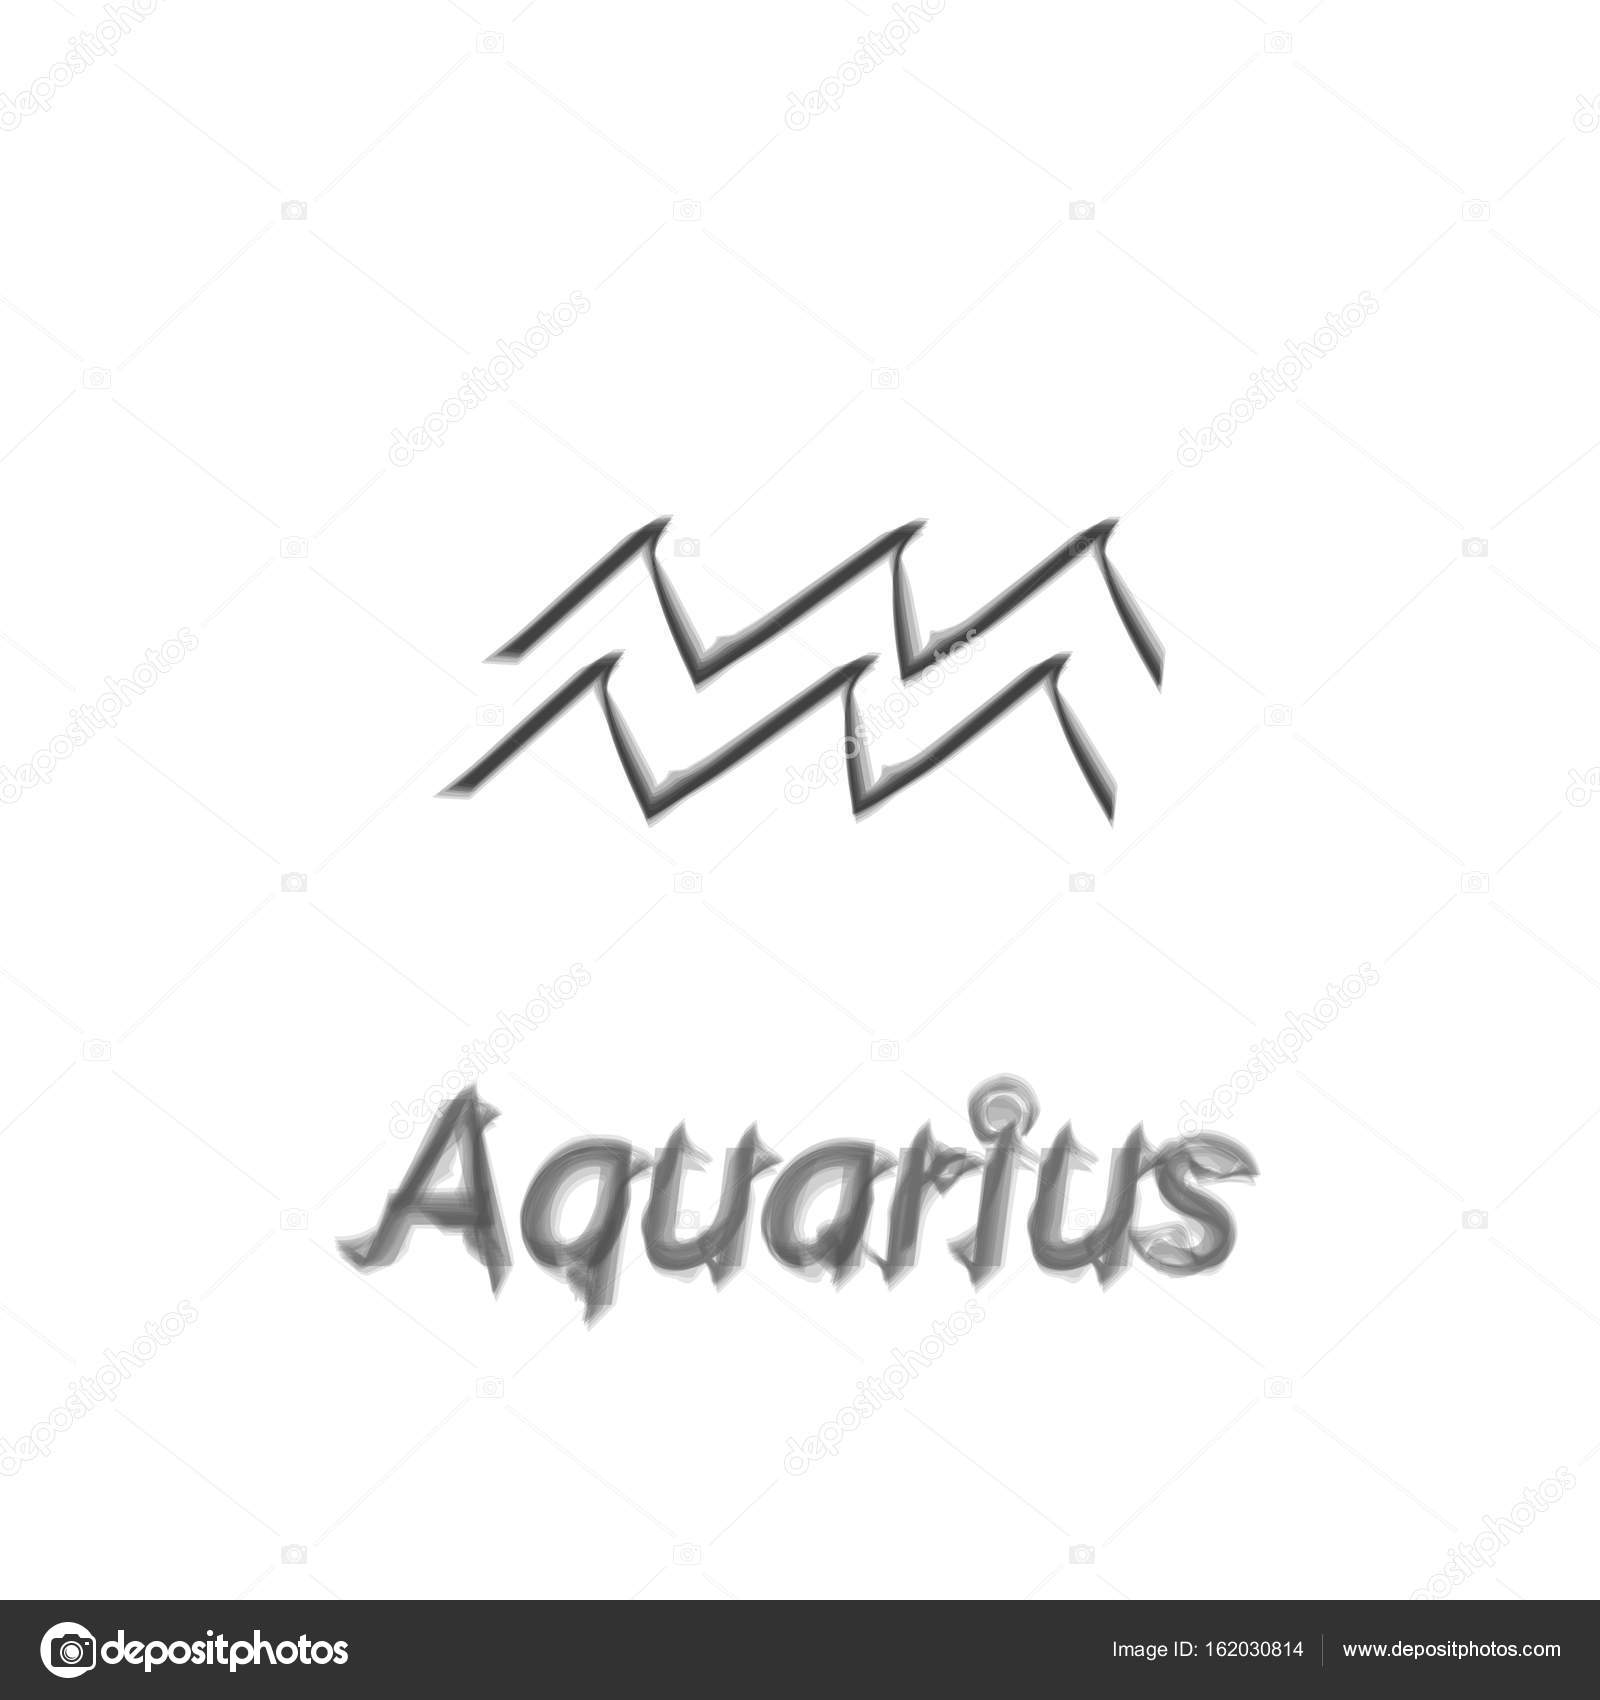 The water bearer aquarius sing star constellation vector element the water bearer aquarius sing star constellation vector element age of aquarius constellation zodiac symbol on light white background vector by asnia biocorpaavc Choice Image